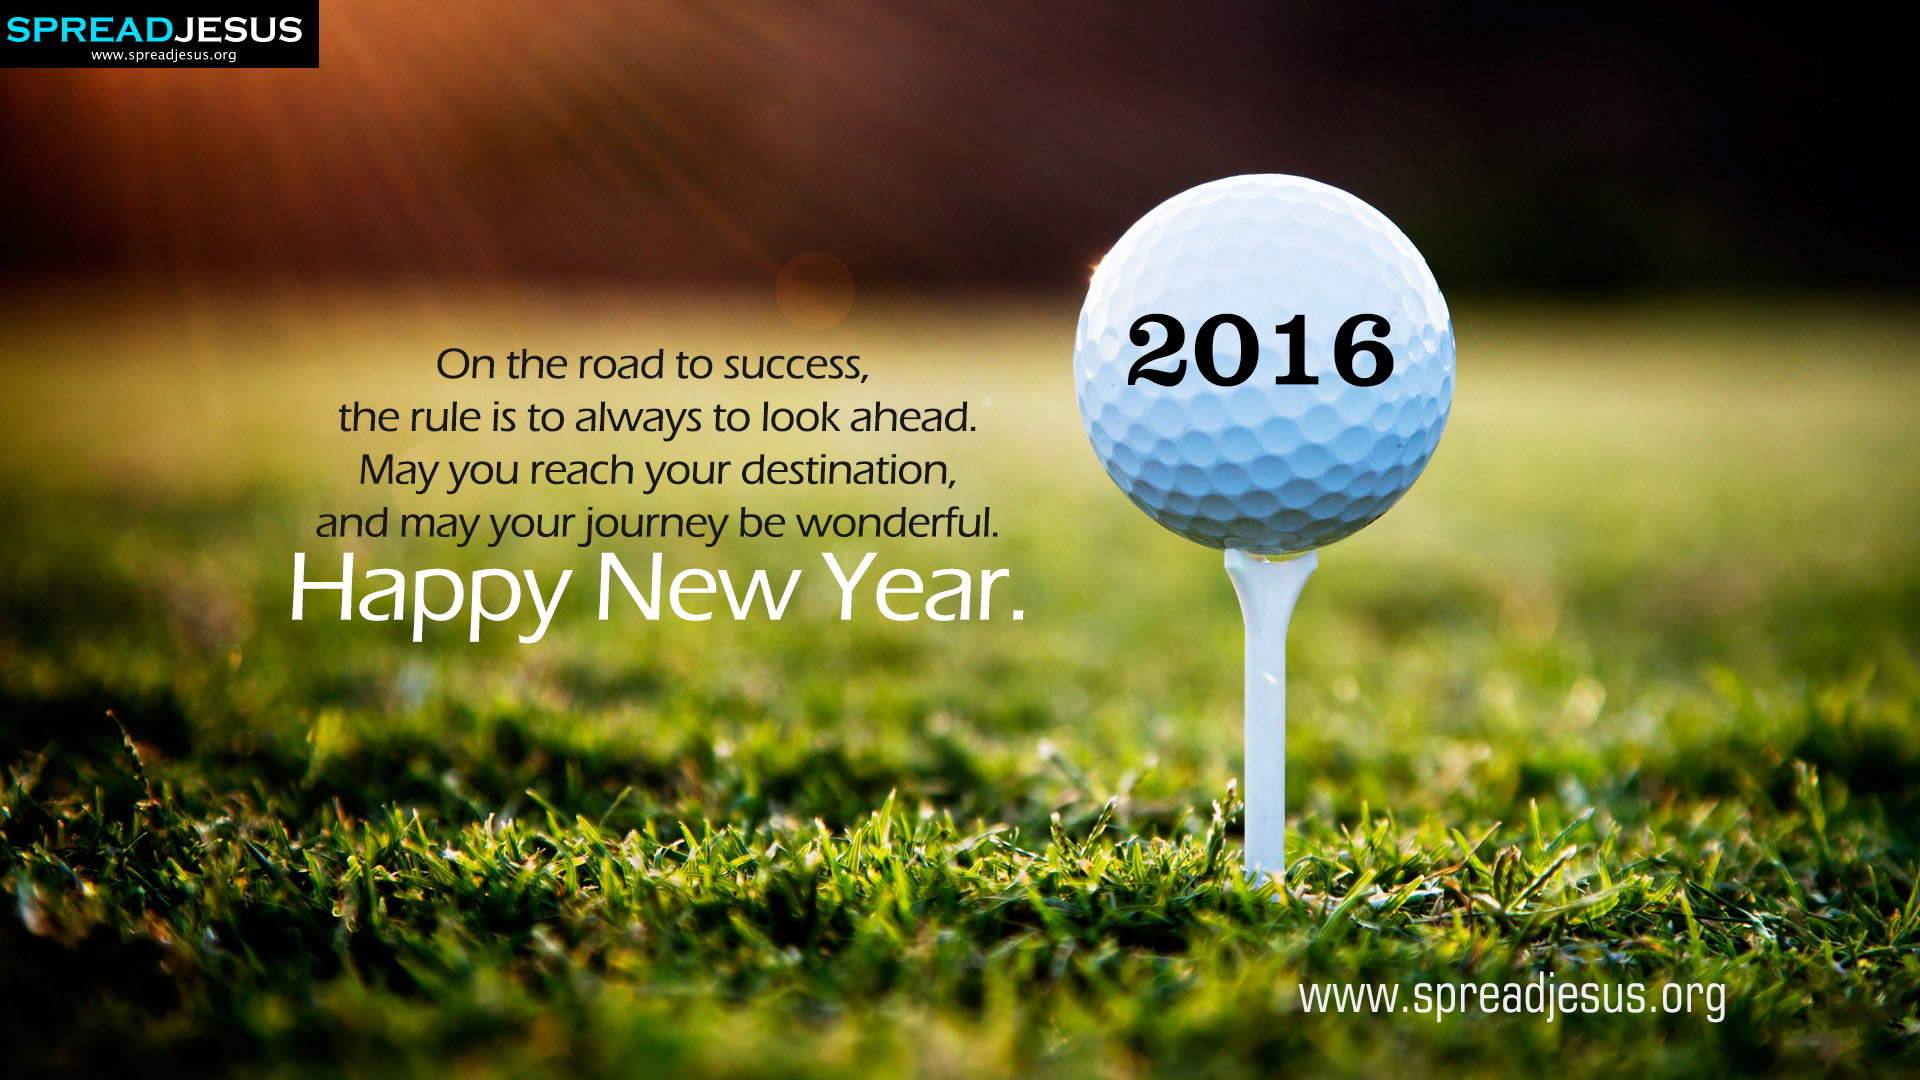 Wallpaper download new year - Happy New Year 2016 Hd Wallpapers Download 1 Happy New Year Hd Wallpapers Free Download